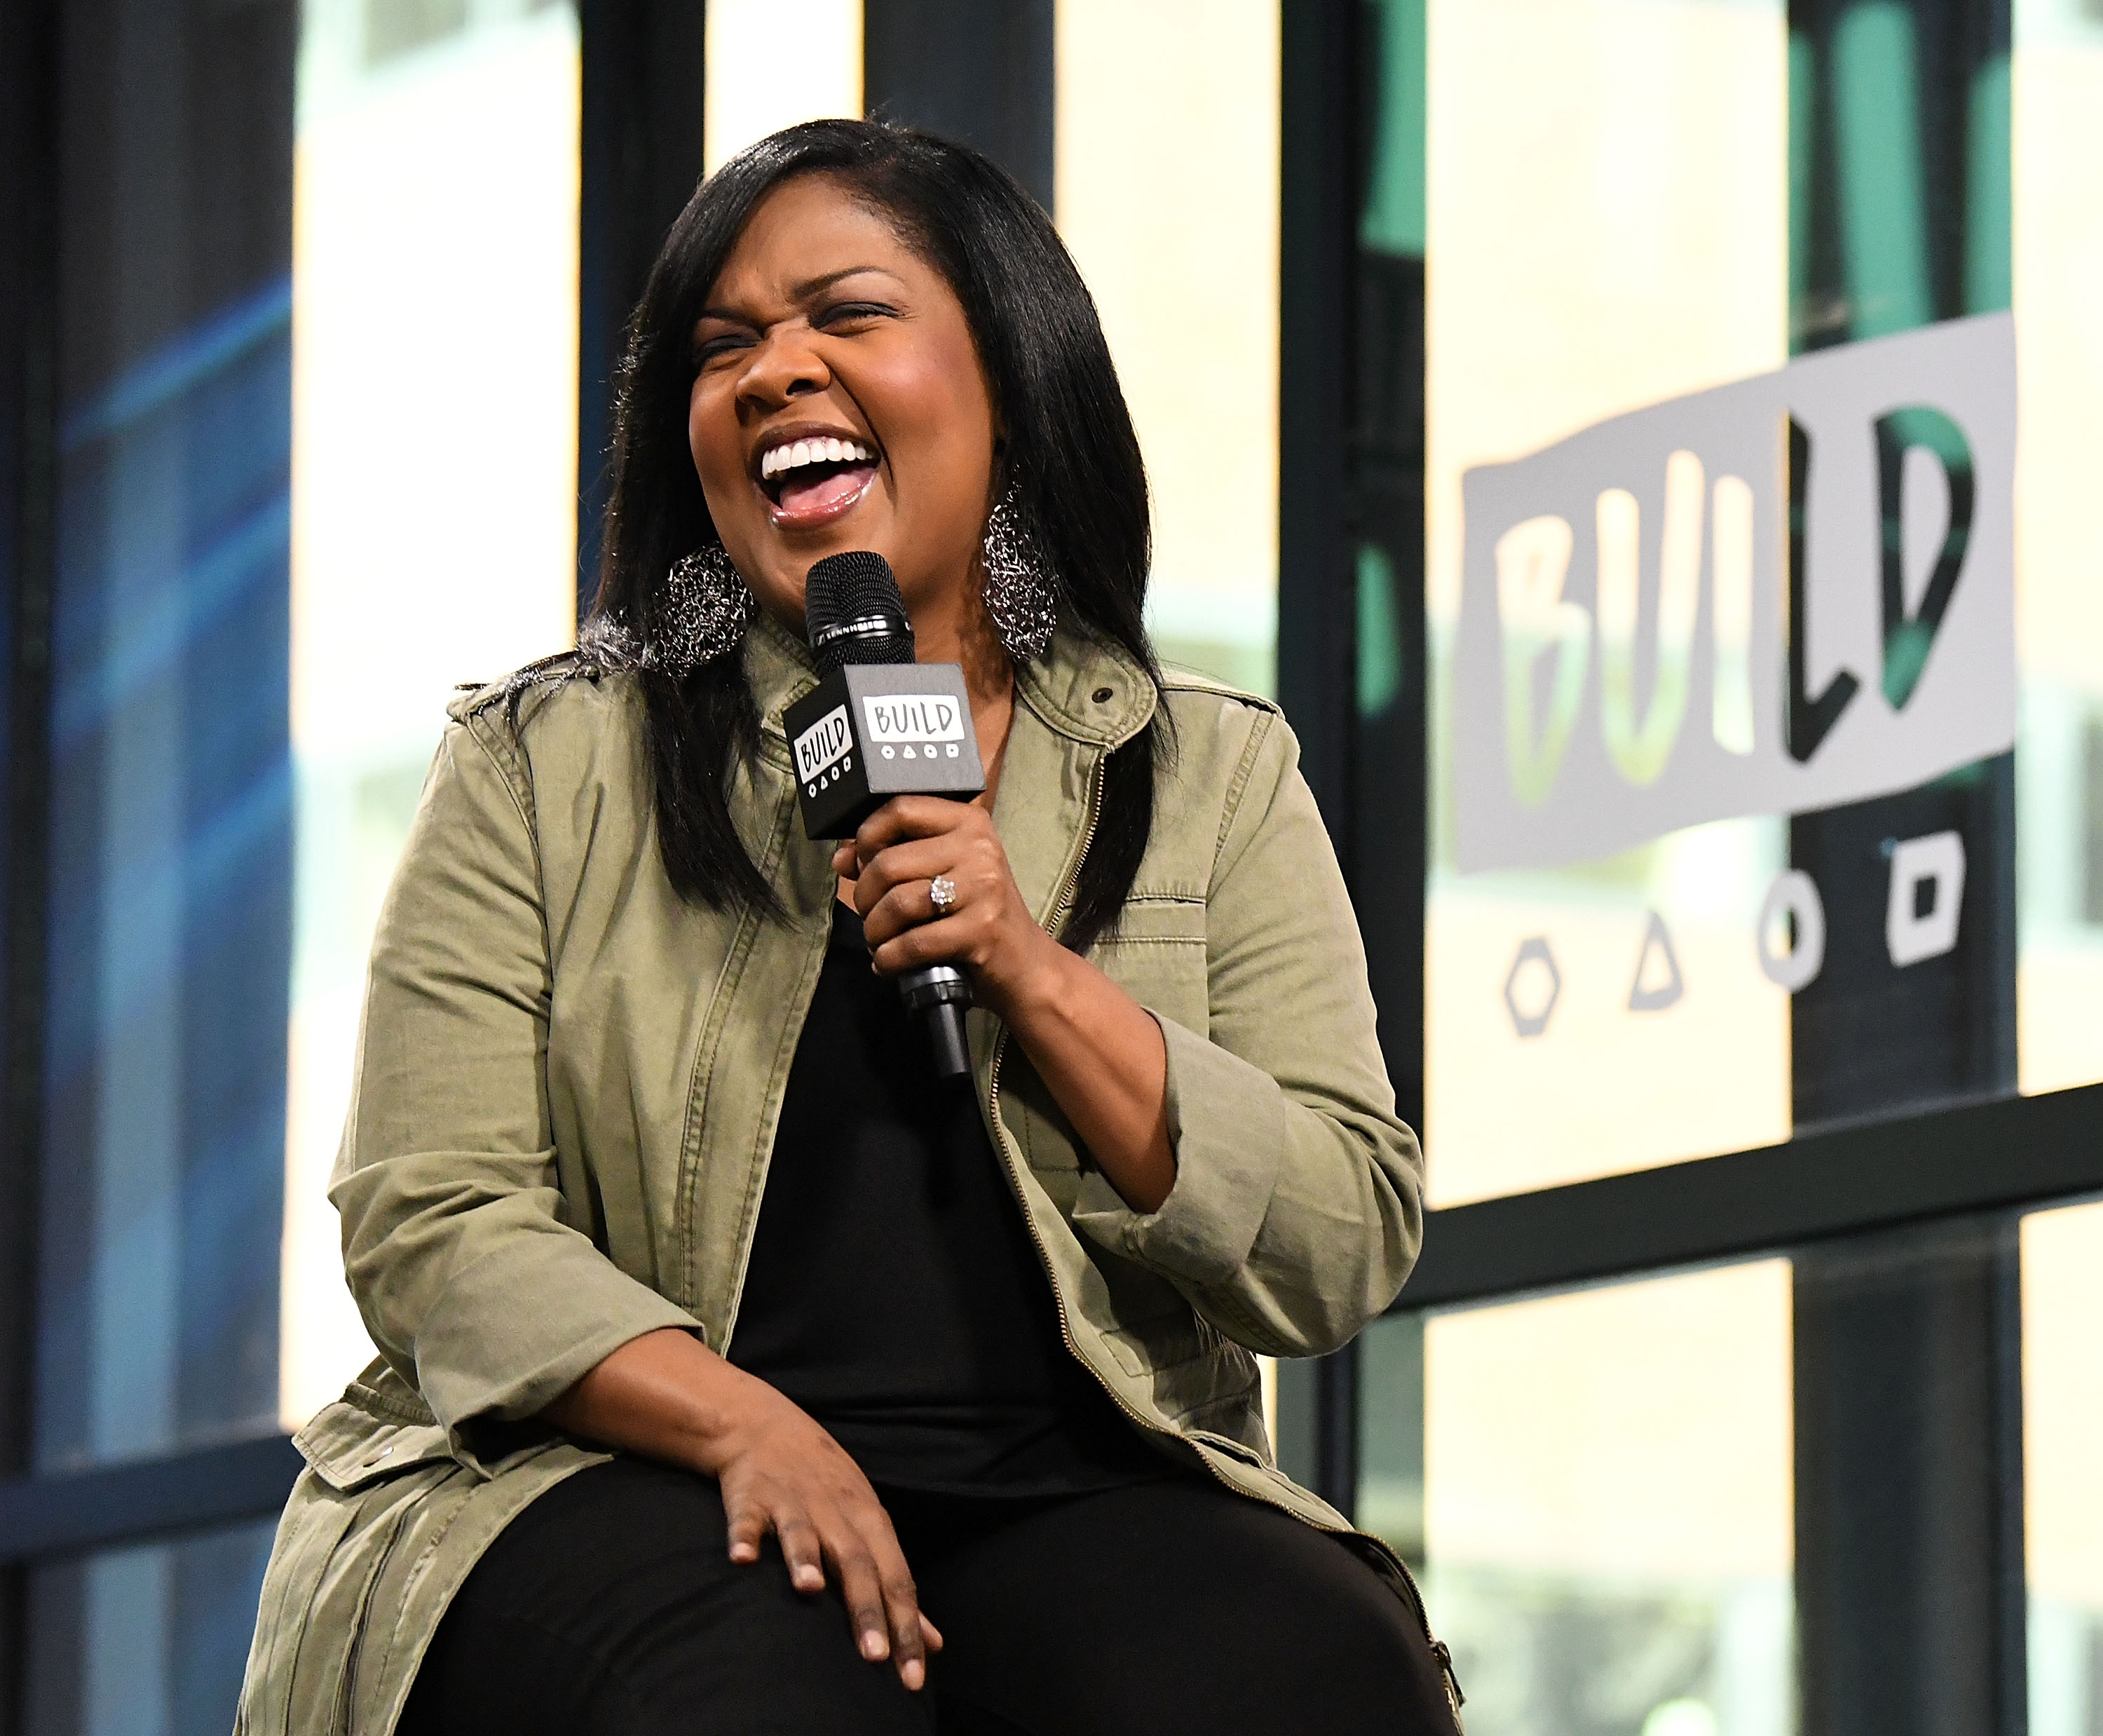 Build Series Presents CeCe Winans Discussing 'Let Them Fall in Love'